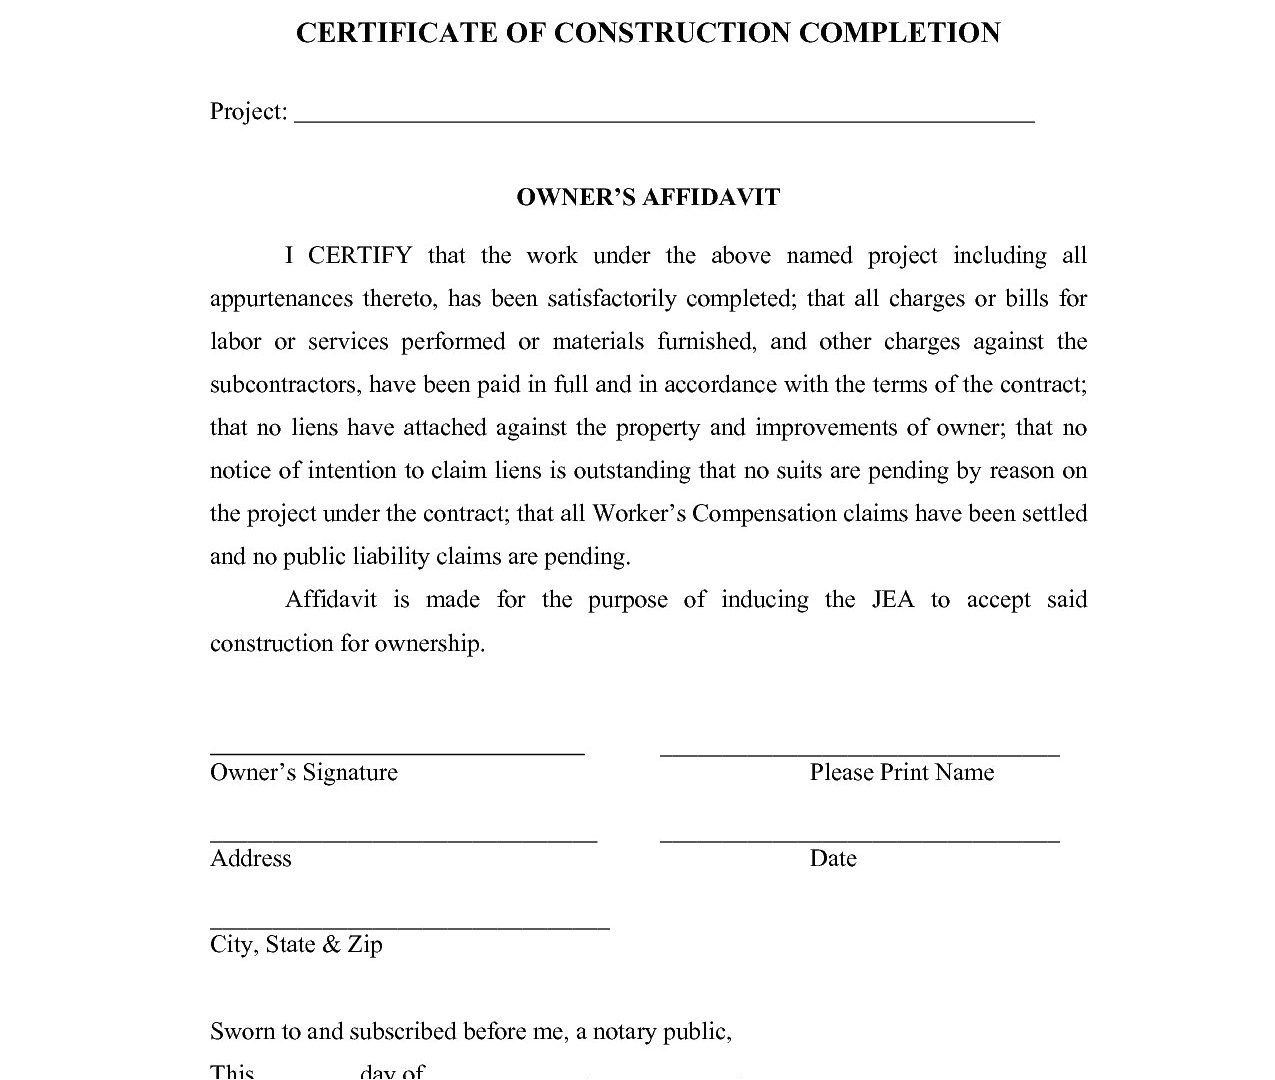 Certificate Of Final Completion Template Civil Work Completion Certificate Sample Copy Certificate